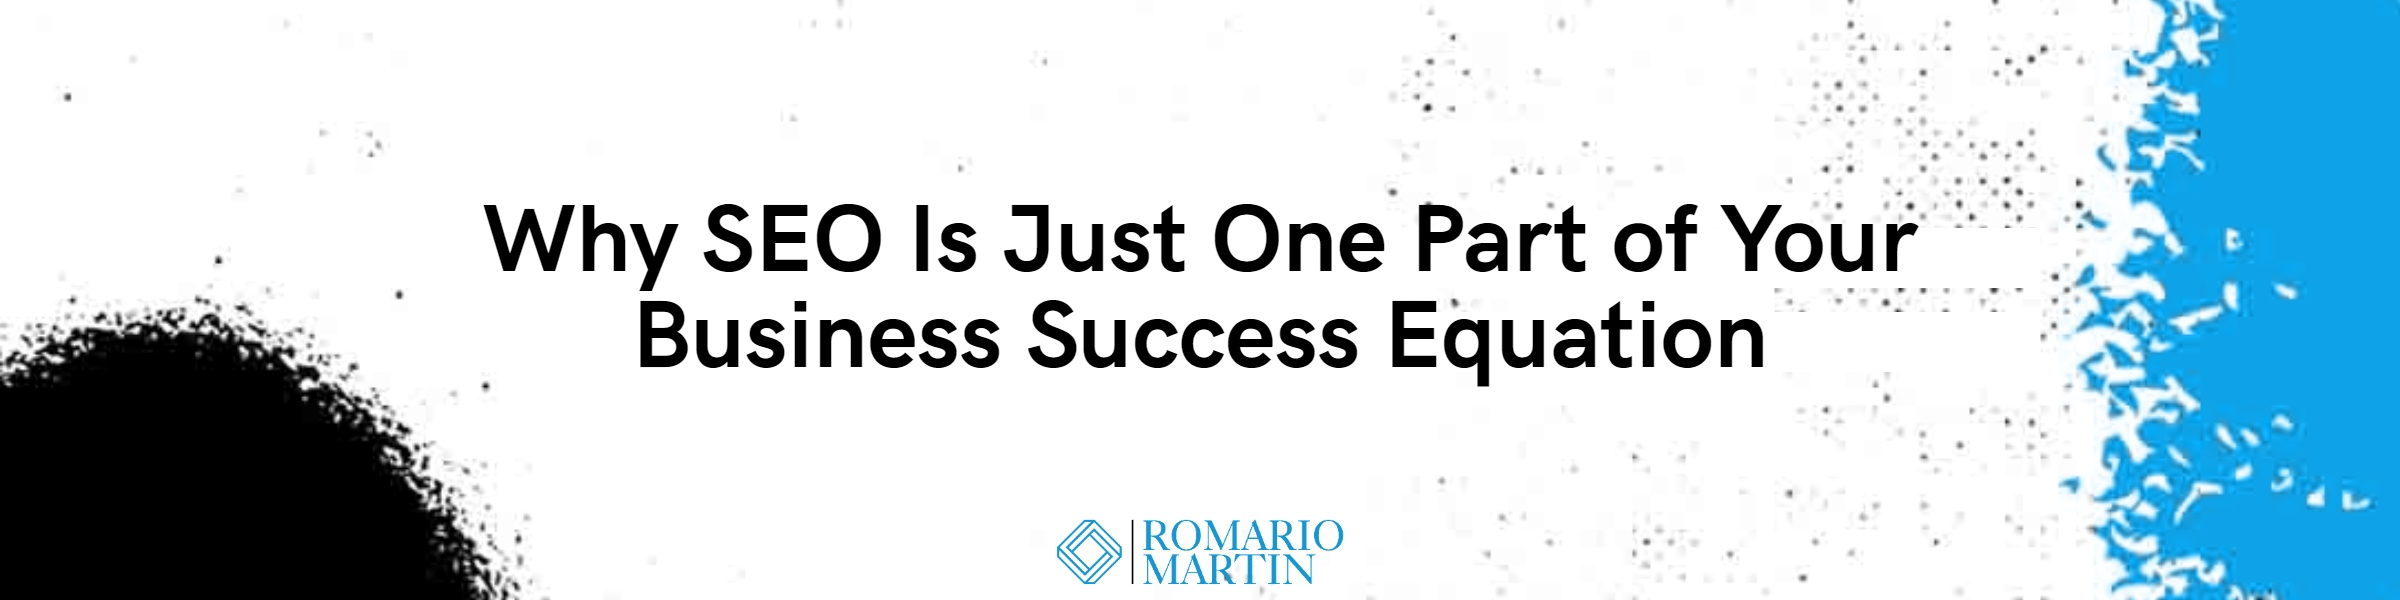 Why SEO Is Just One Part of Your Business Success Equation